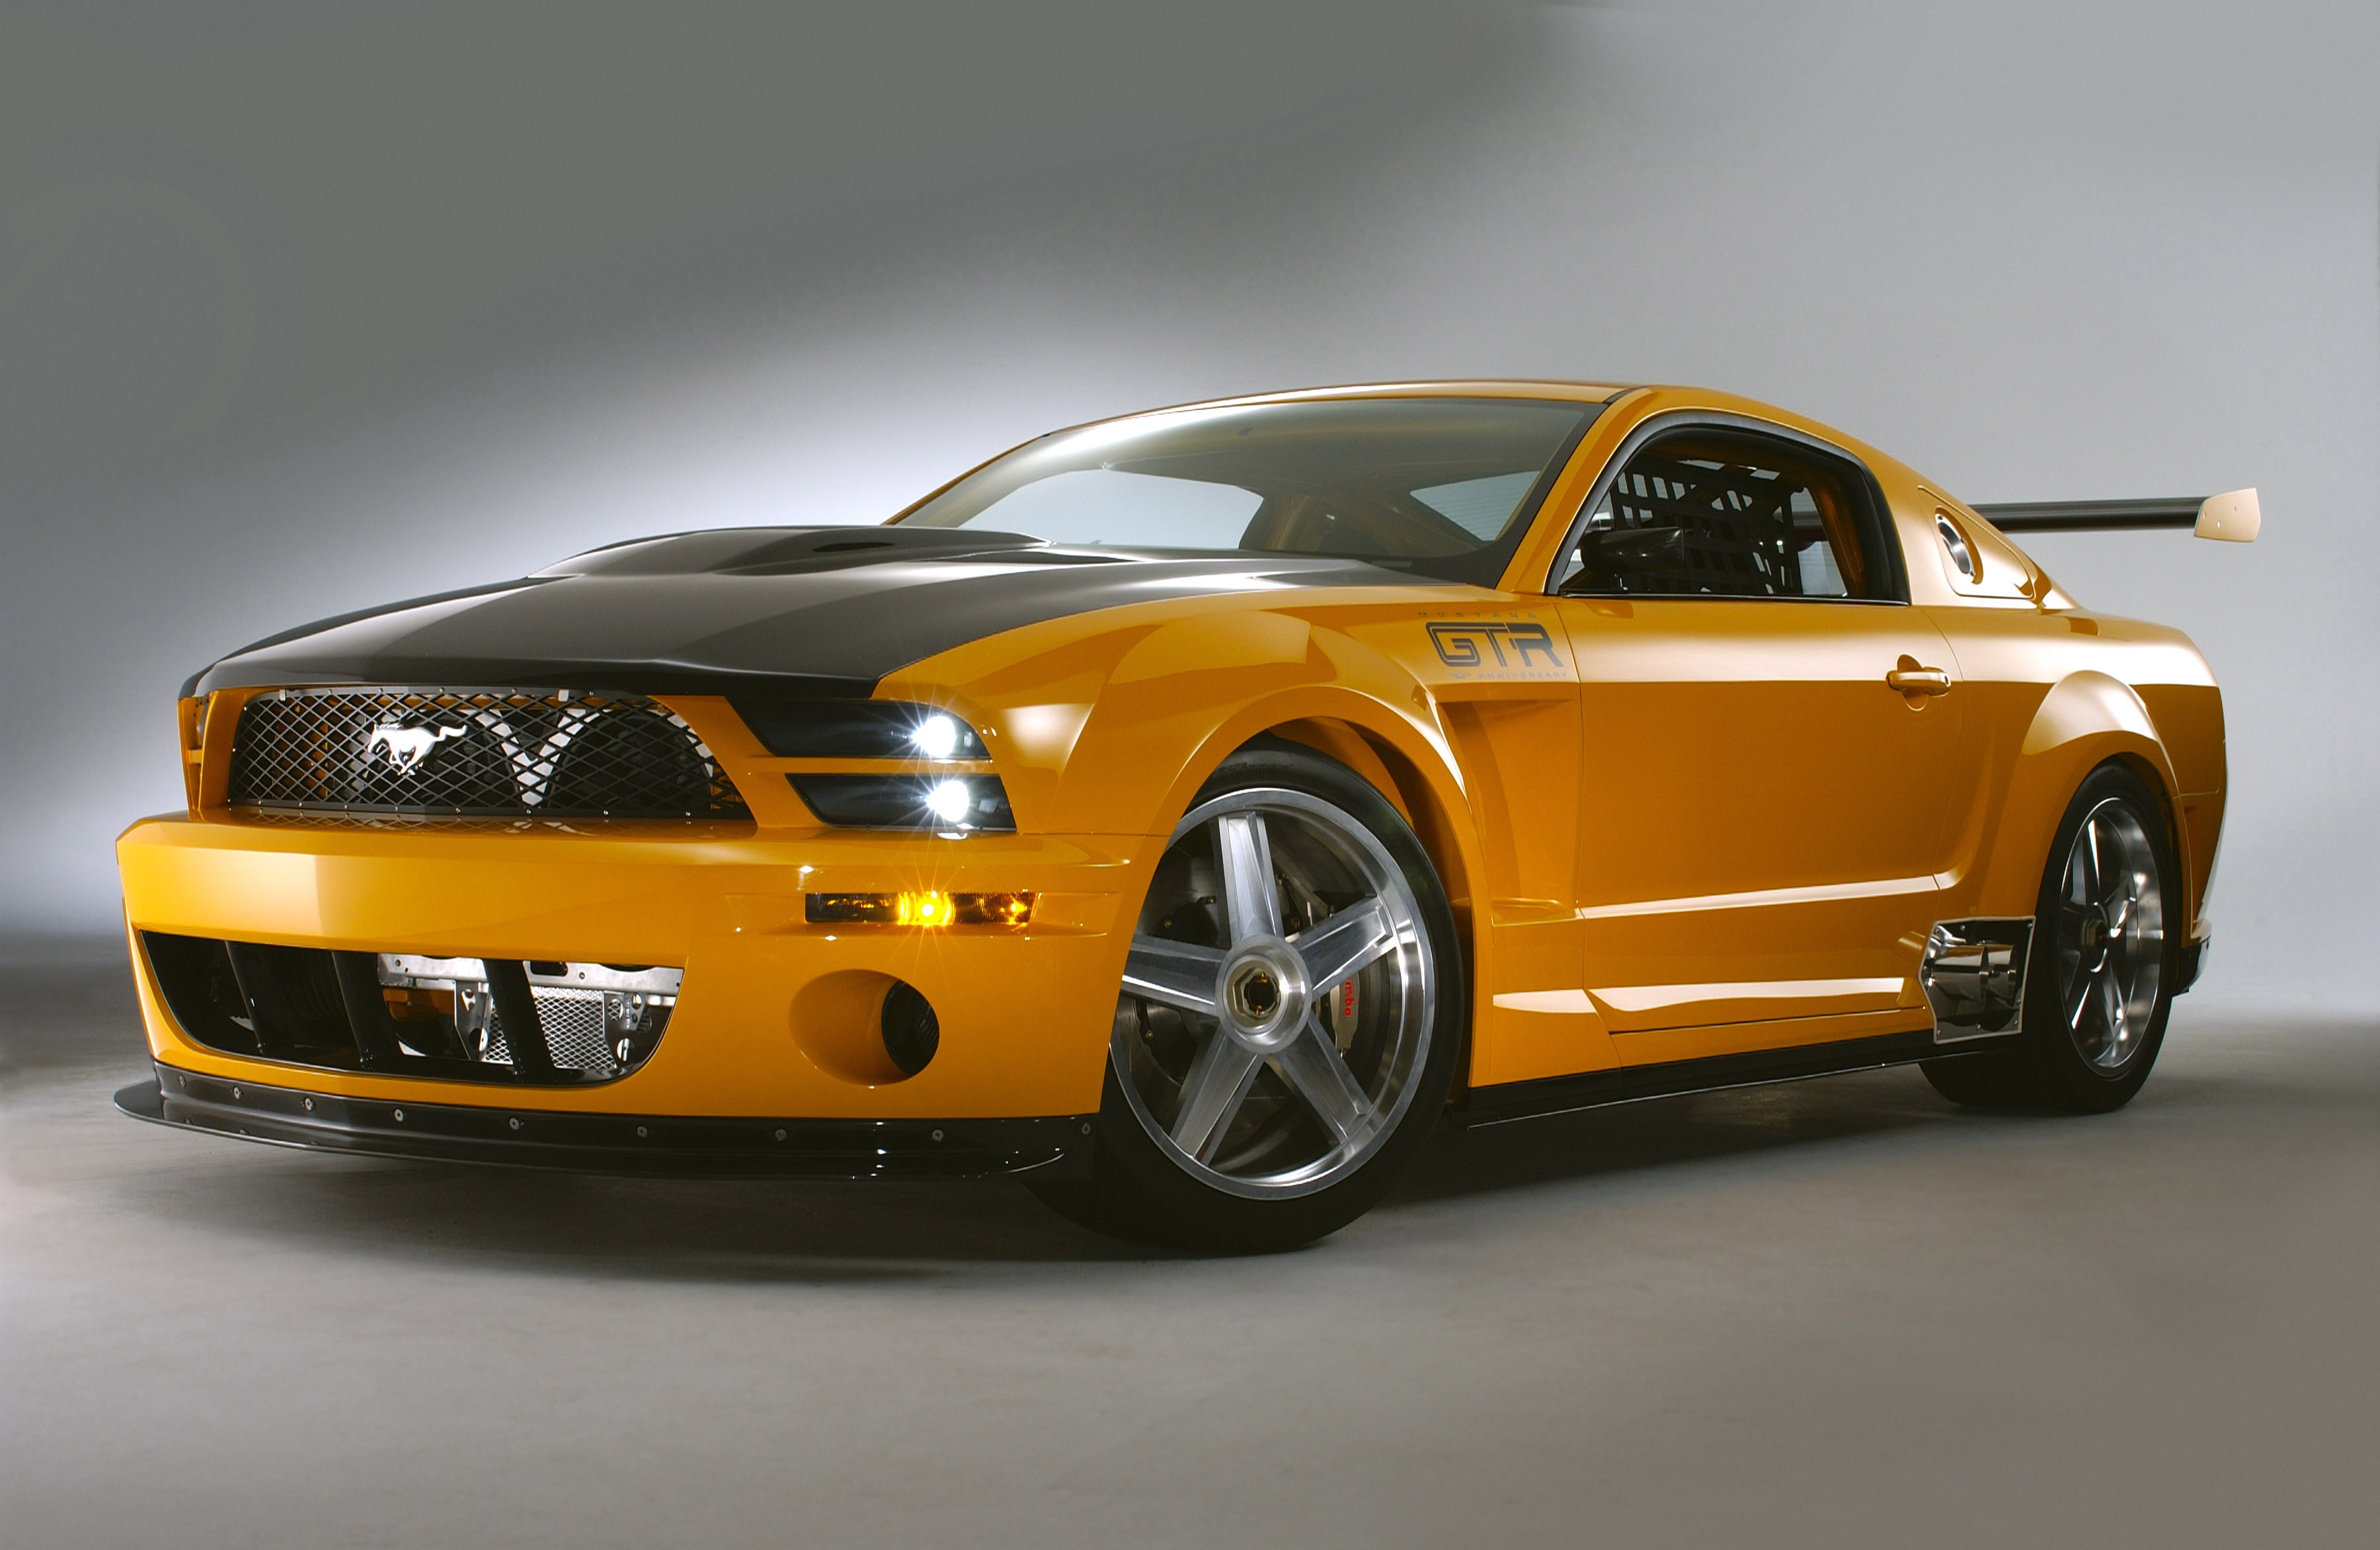 Ford Mustang GT-R Concept - Picture 18073